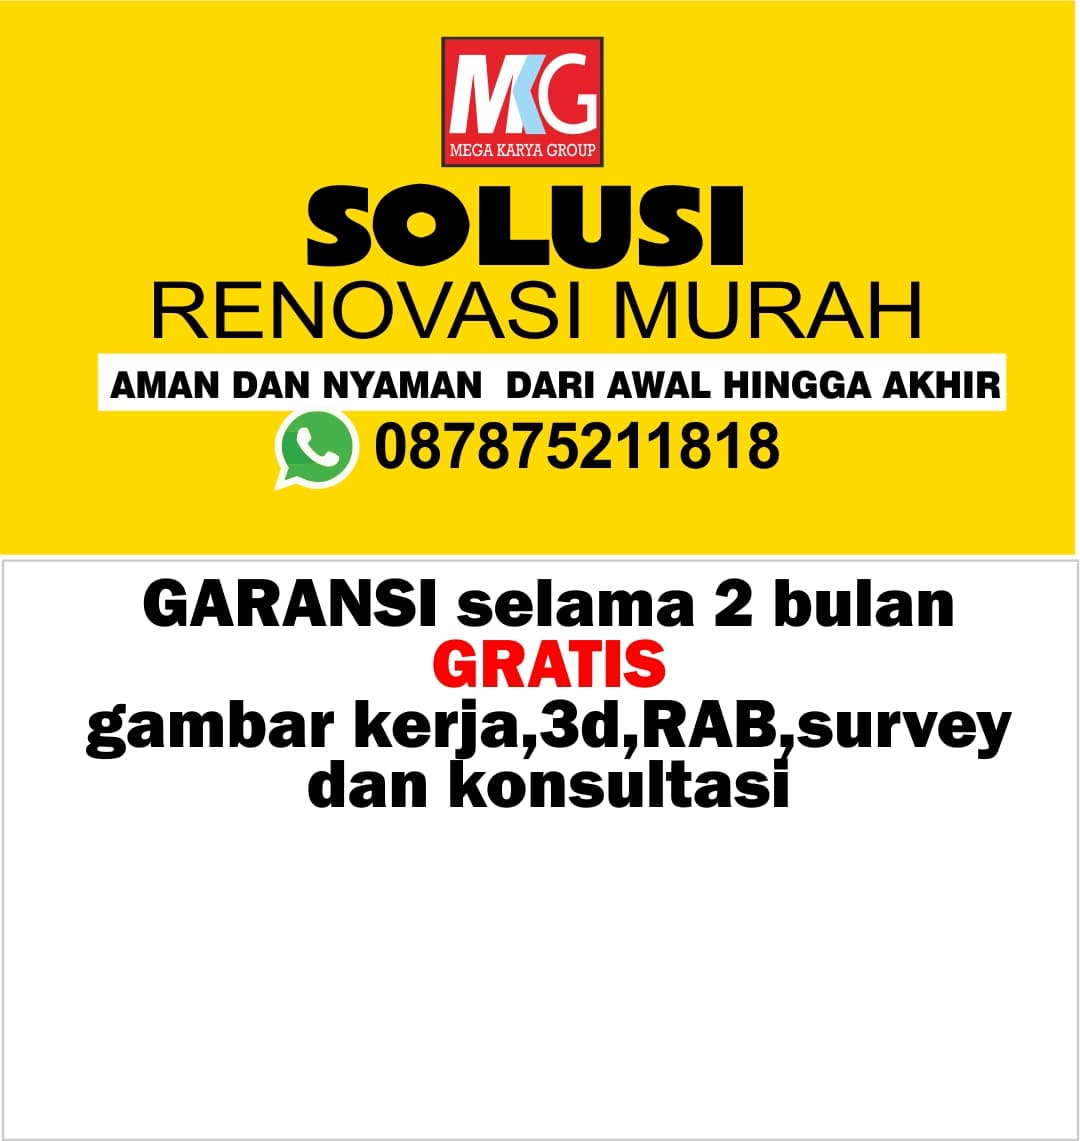 Renovasi In English Ter Murah Harga Paling Murah